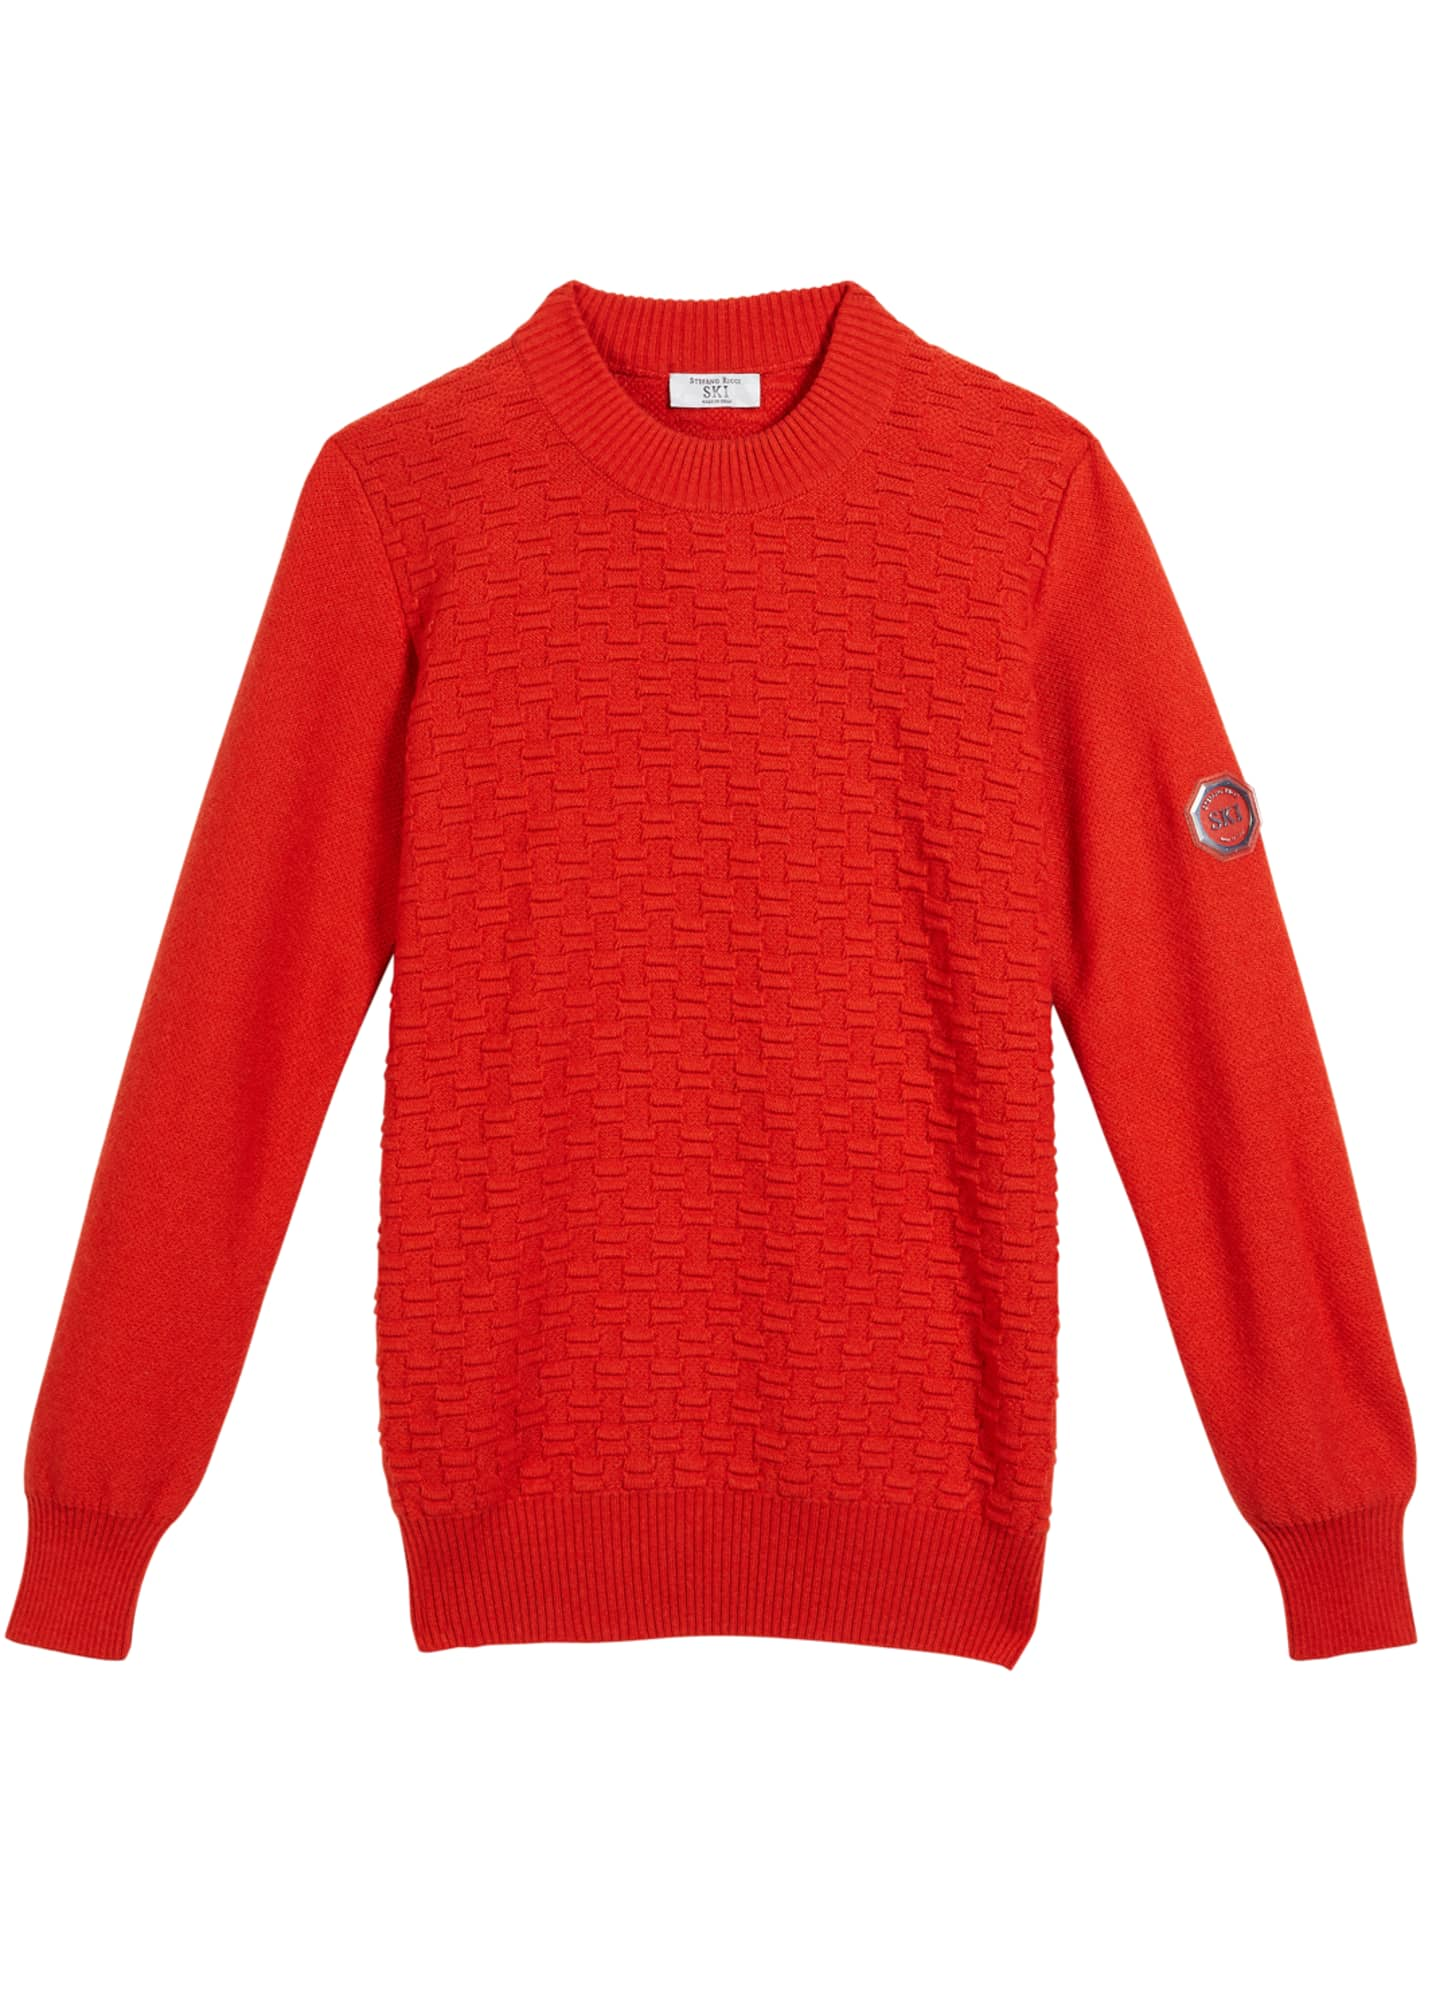 Image 1 of 1: Boys' Textured Knit Cashmere Sweater, Size 12